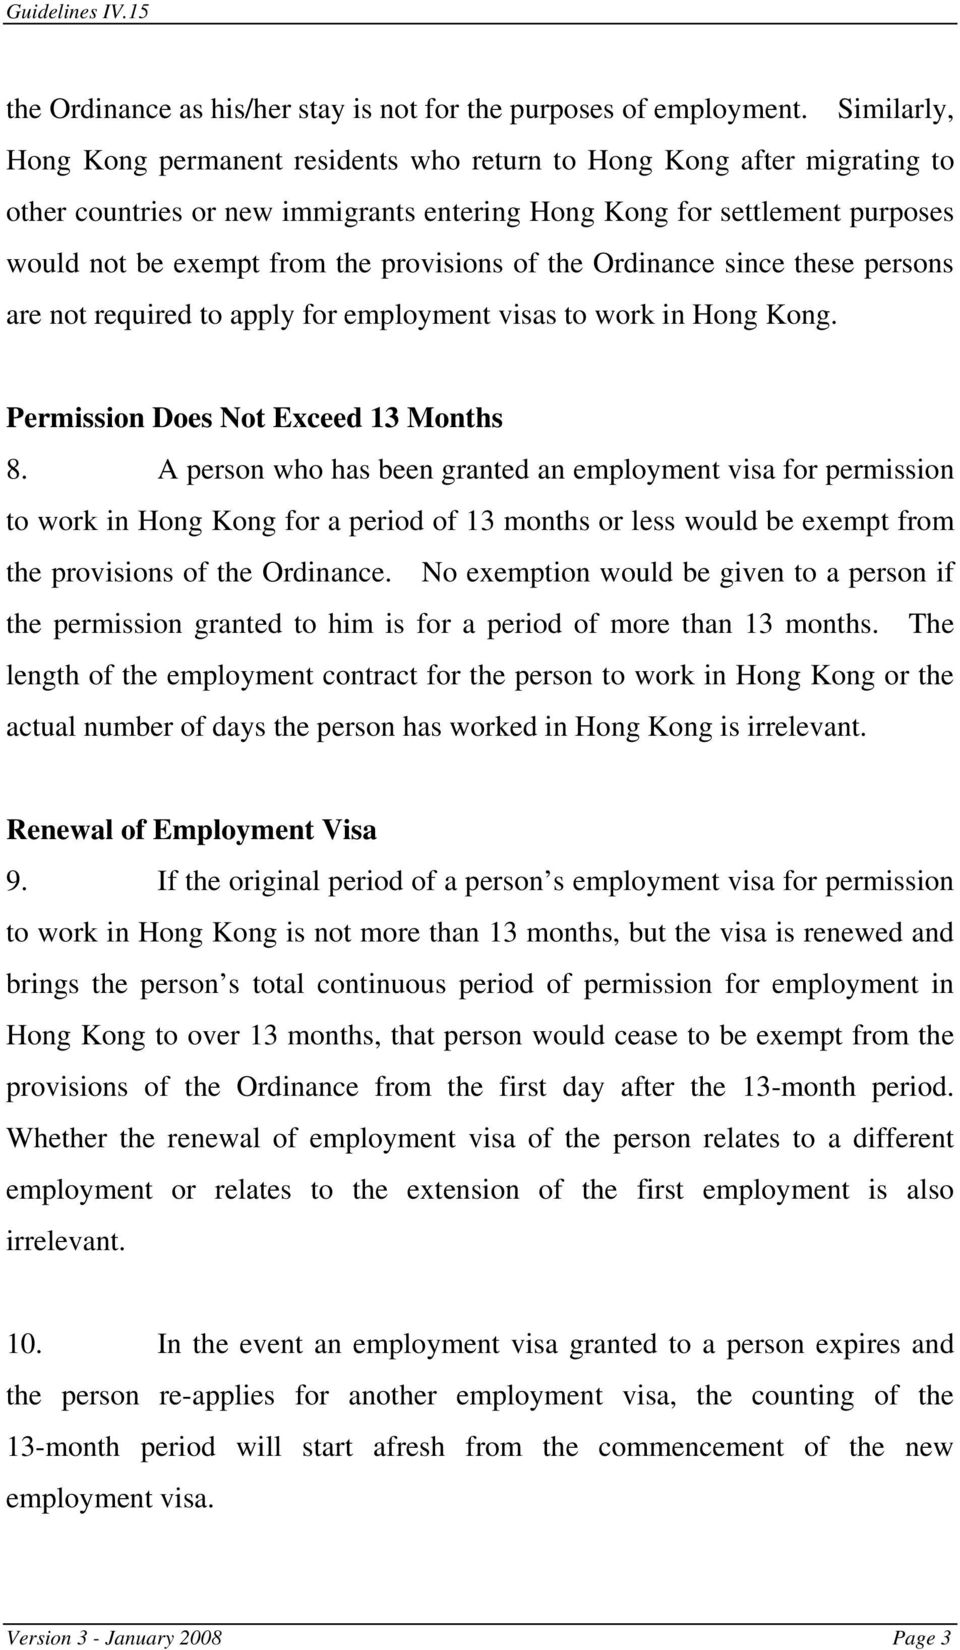 provisions of the Ordinance since these persons are not required to apply for employment visas to work in Hong Kong. Permission Does Not Exceed 13 Months 8.